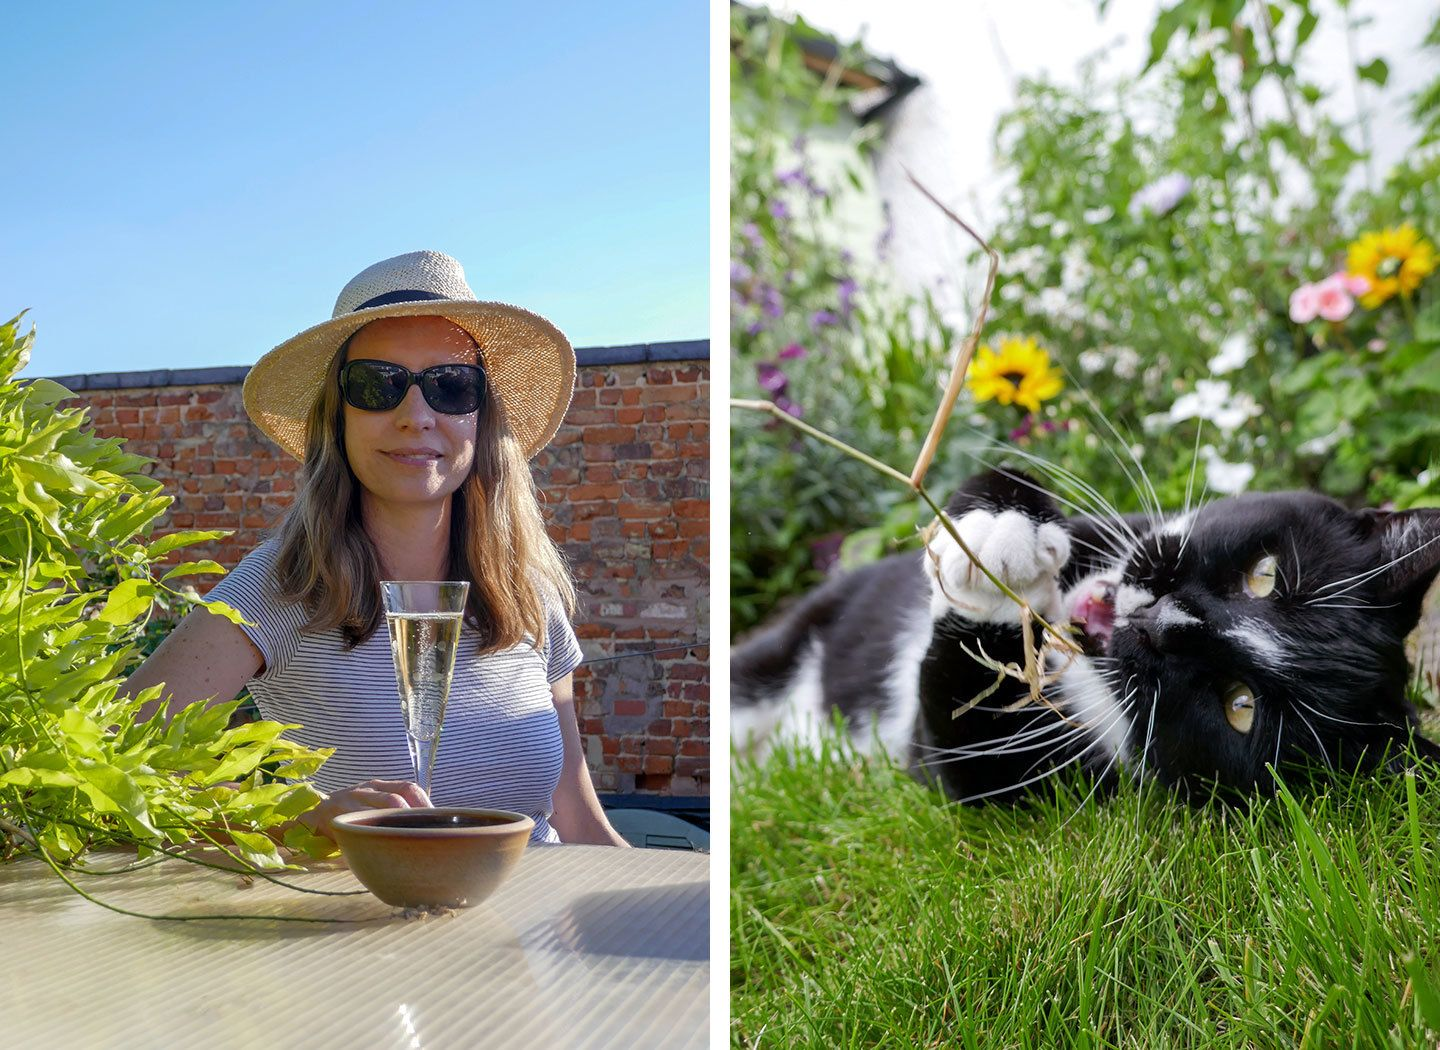 Lockdown life – shed roof proseccos and cats in the garden